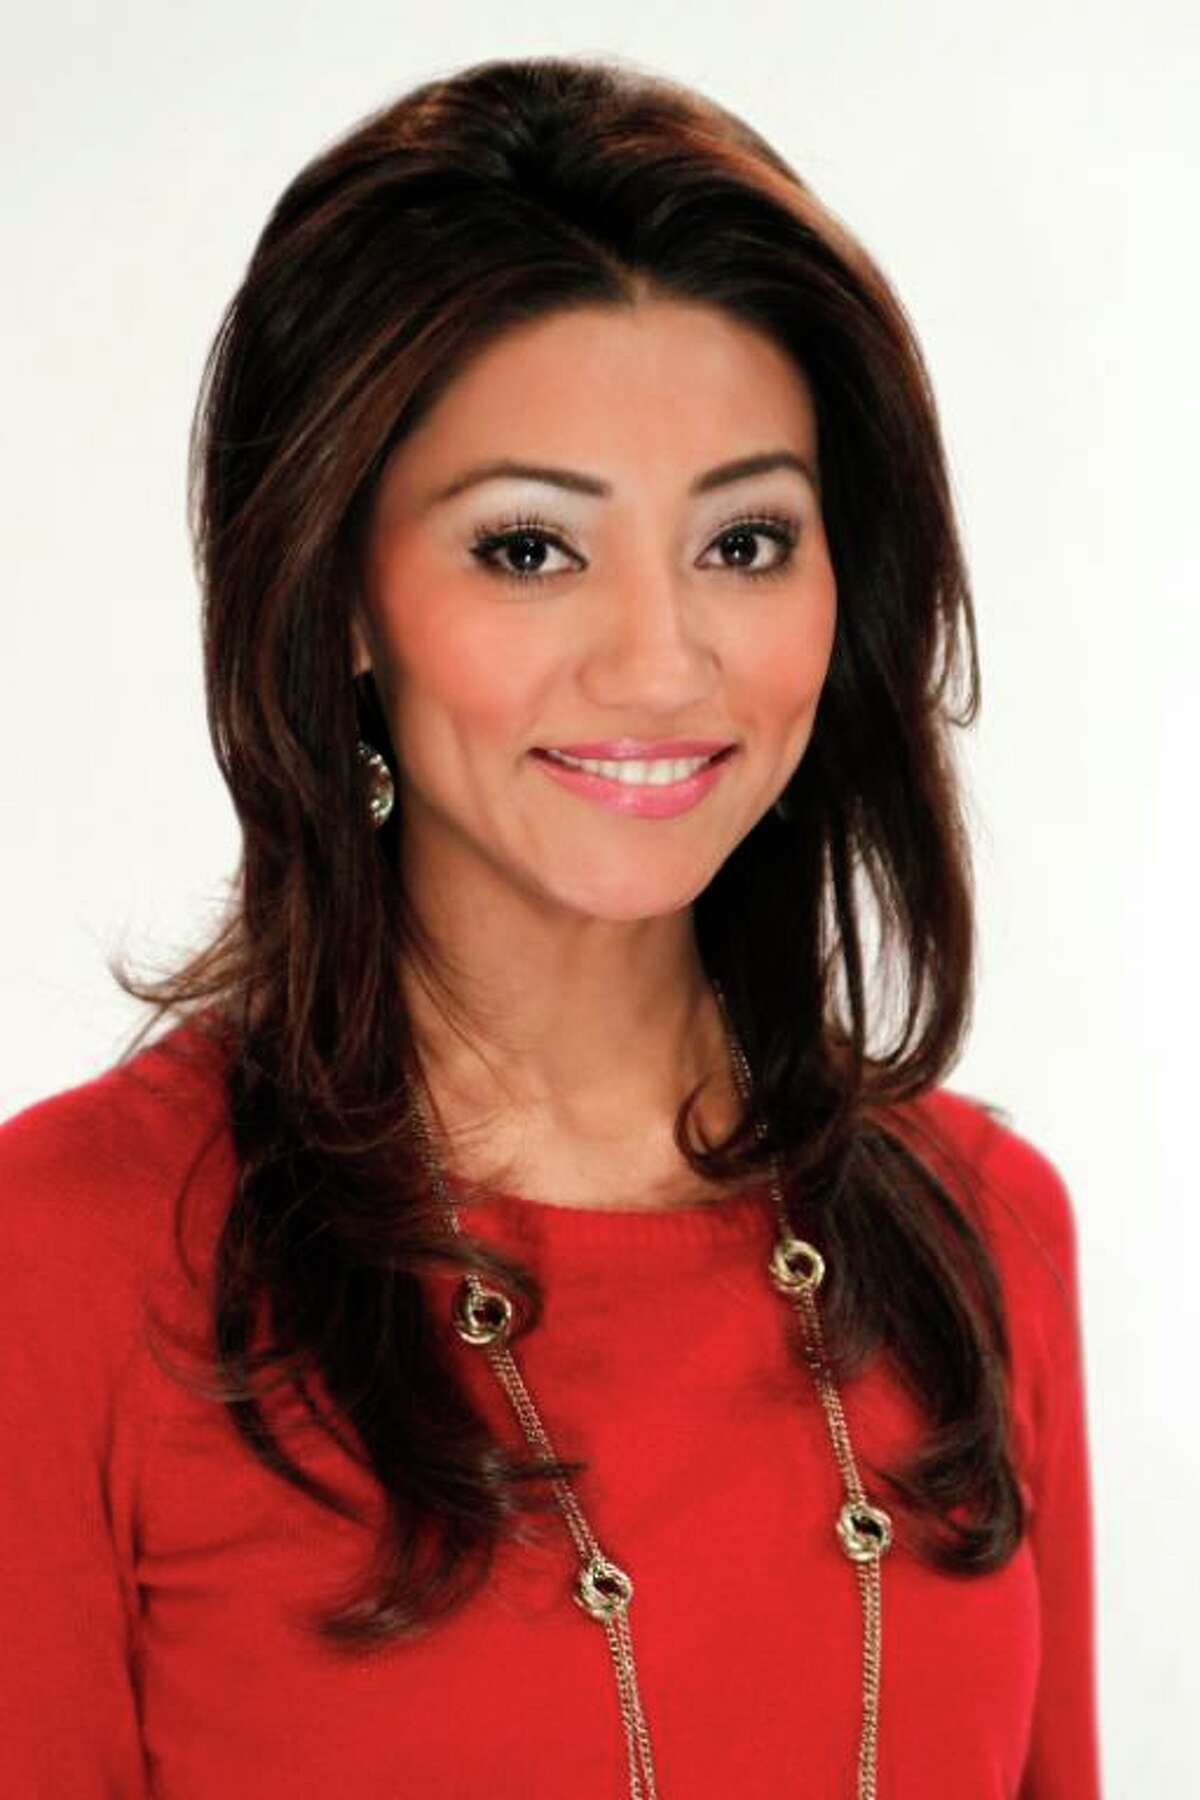 """Rita Garcia, FOX 26 morning anchor: """"Gratitude is the secret weapon to living vibrantly! In the words of Oprah Winfrey: """"Be thankful for what you have; you'll end up having more. If you concentrate on what you don't have, you will never, ever have enough!'"""""""